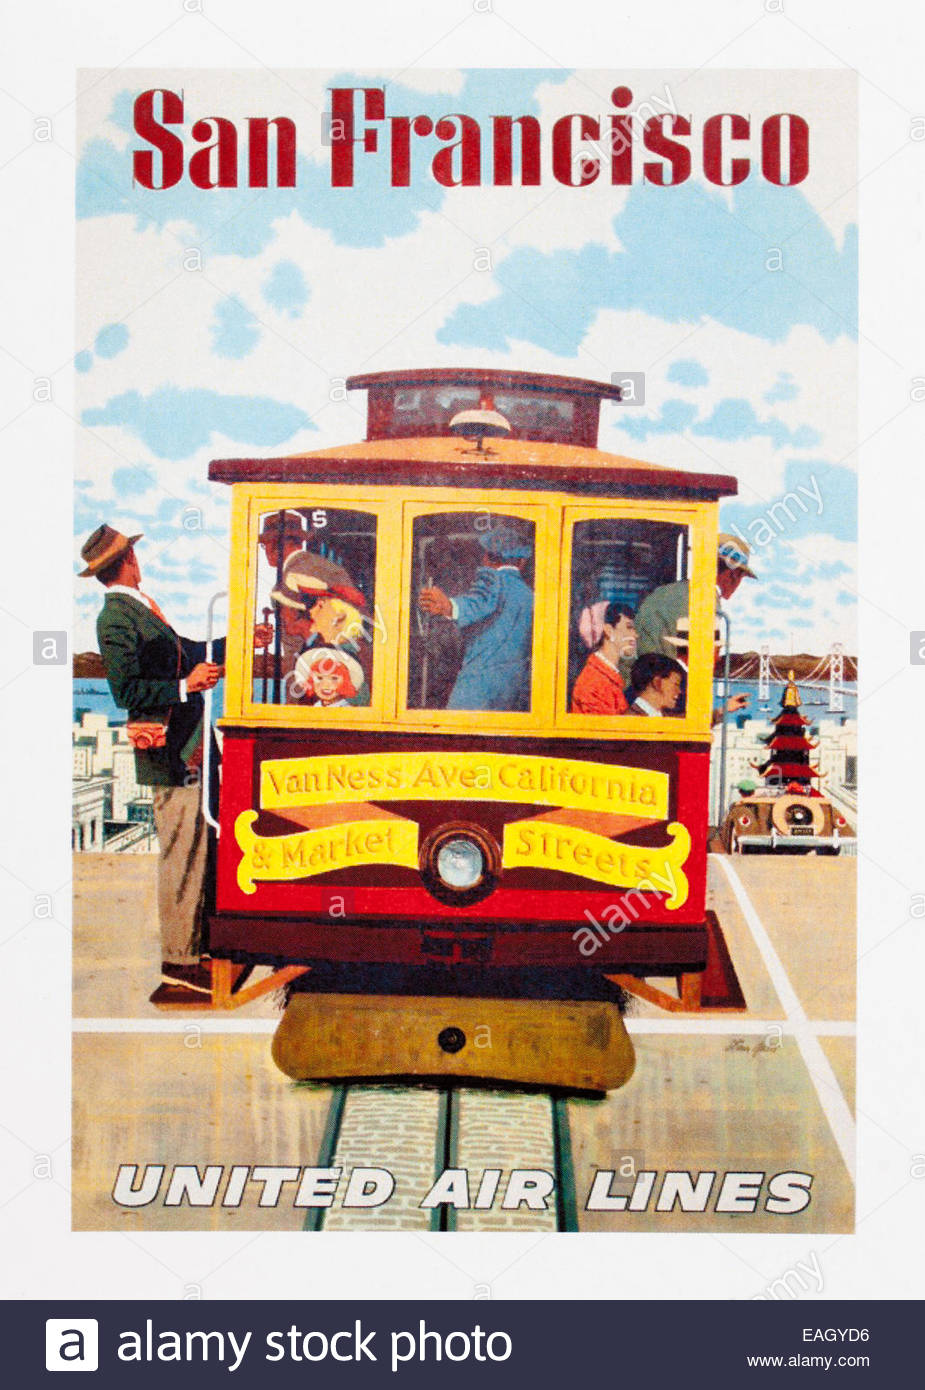 Vintage Travel Poster Advertising San Francisco By United Air Lines Stock Photo Alamy